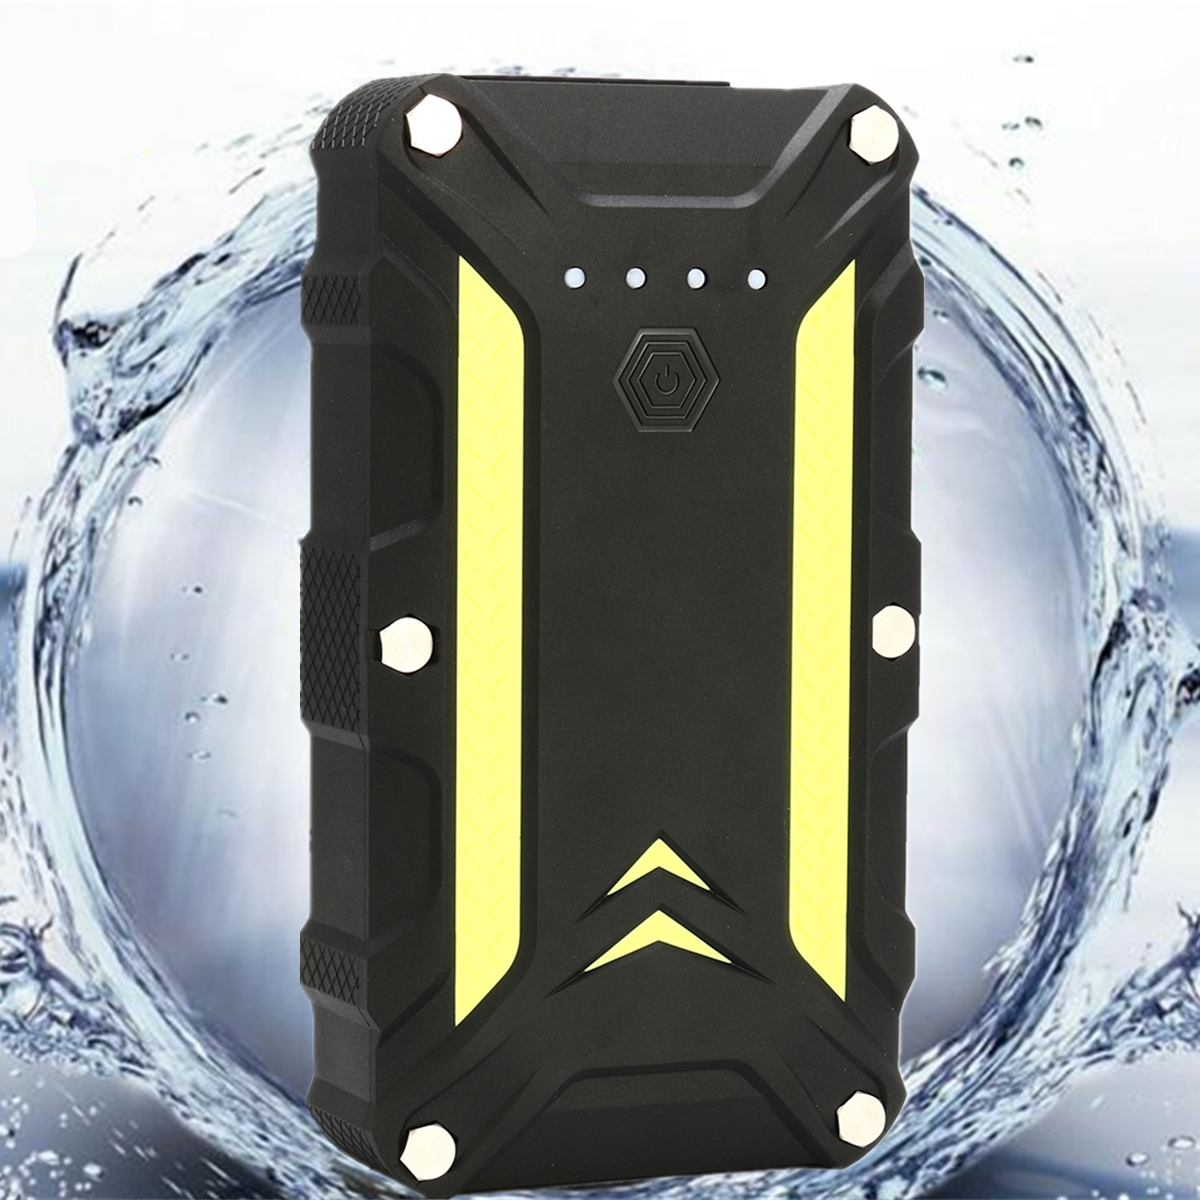 IP68 Waterproof Battery Jump Starter Battery Booster Pack Emergency Power Supply